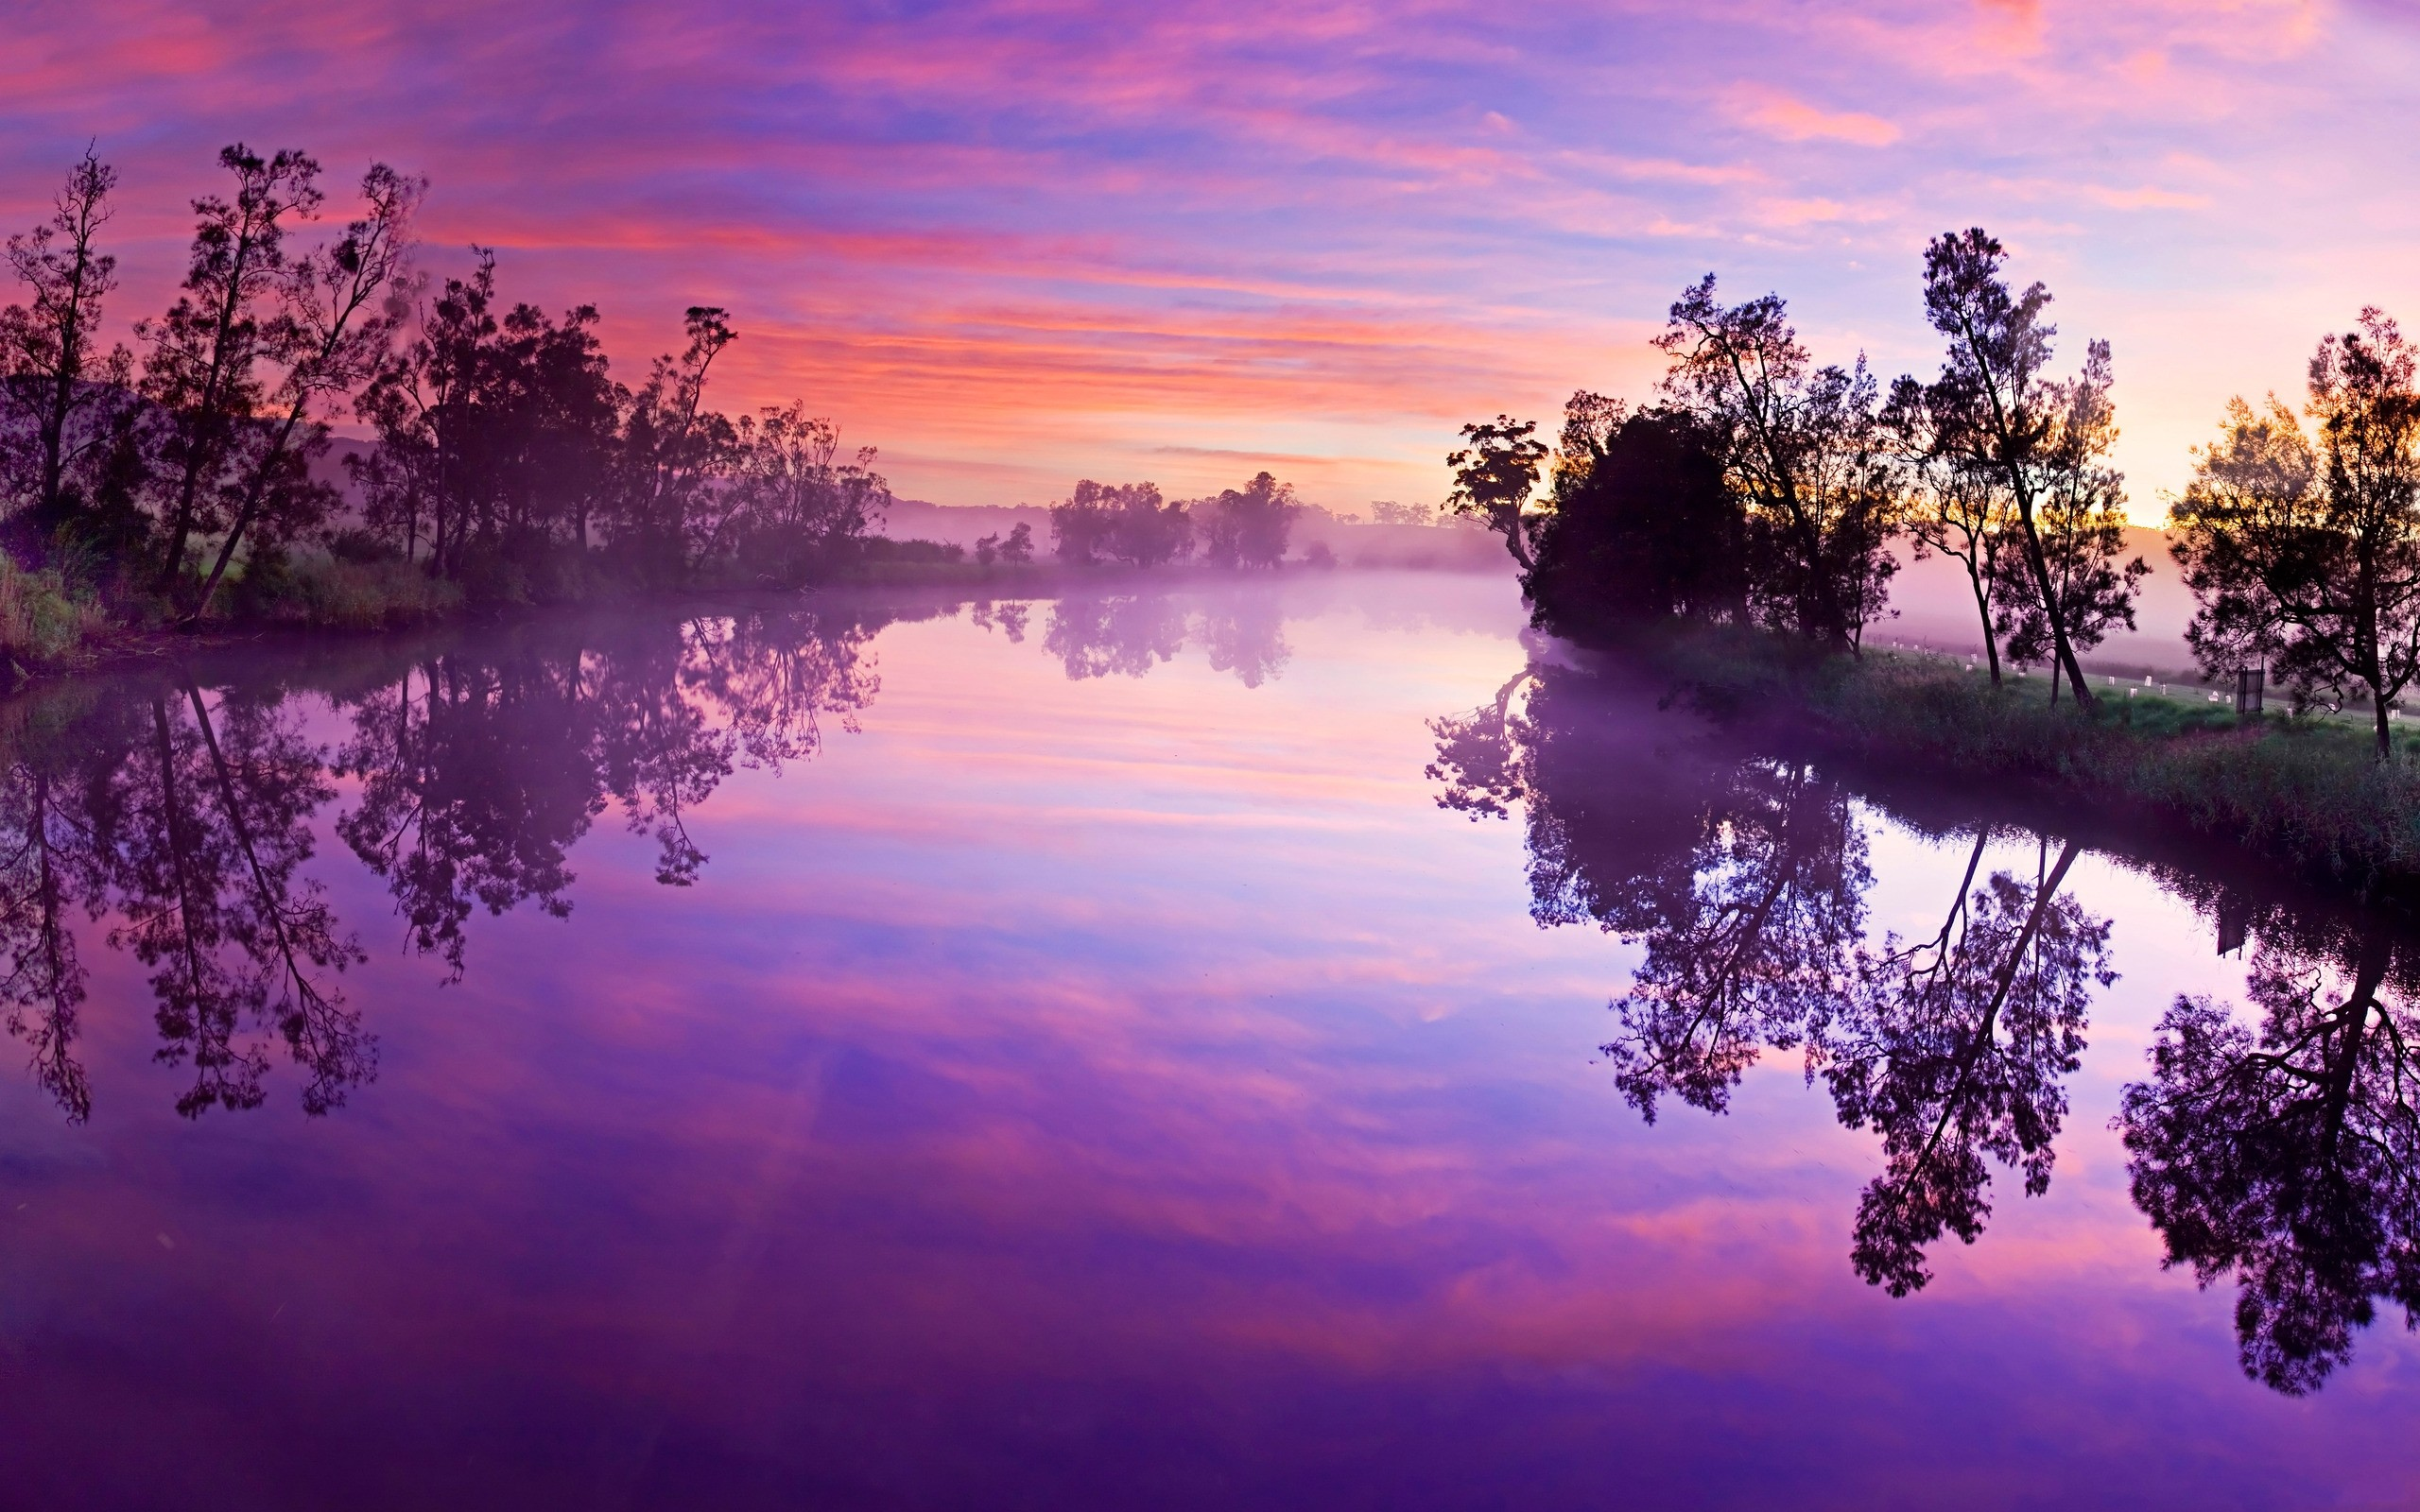 Purple Sunset Over River 2560x1600 Wallpaper Teahub Io